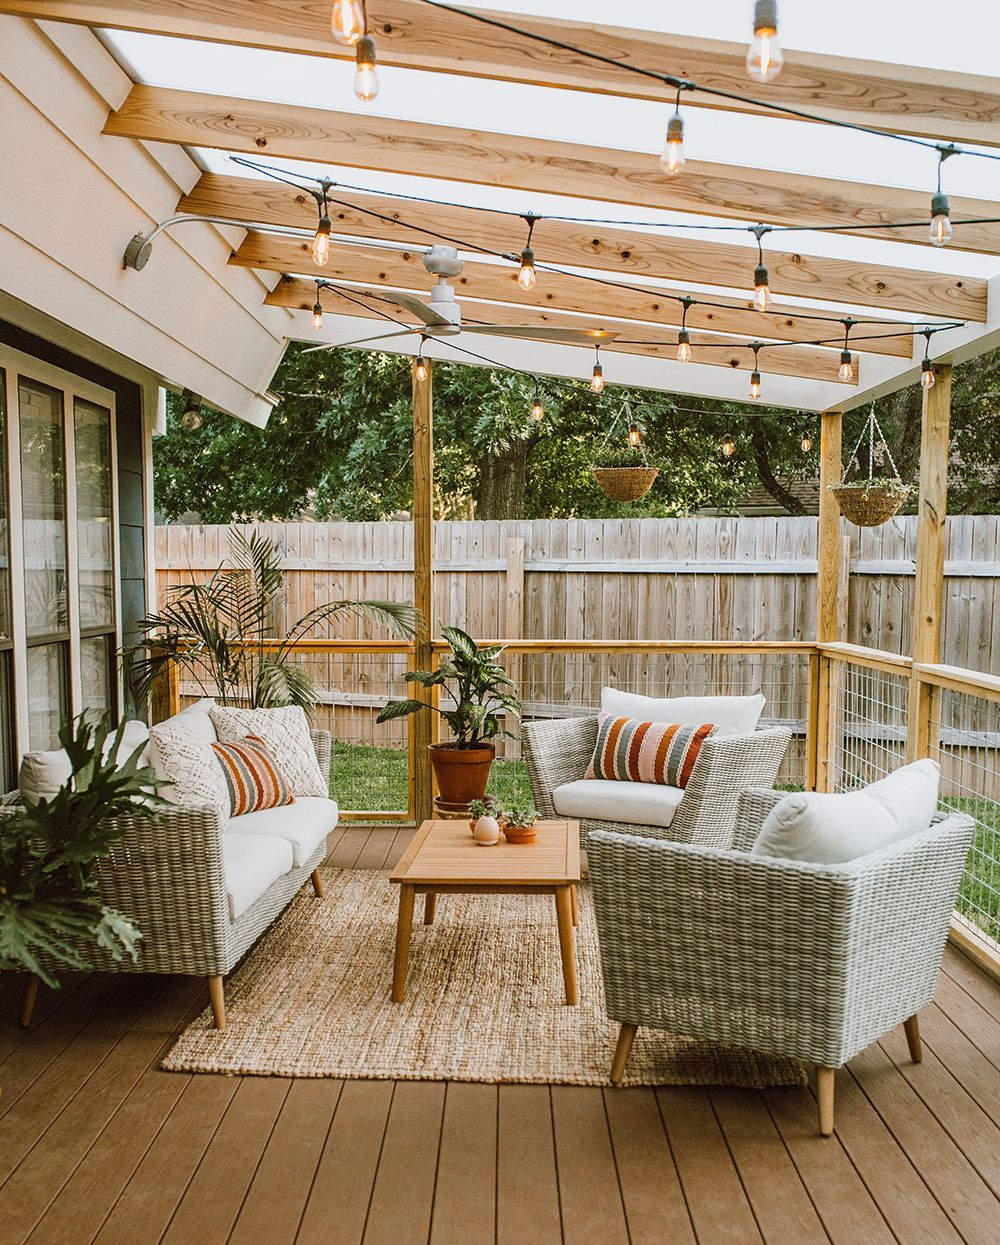 enclosed pergola designs on these pergola ideas will add style and shade to your backyard in 2020 patio design outdoor rugs patio diy patio pinterest